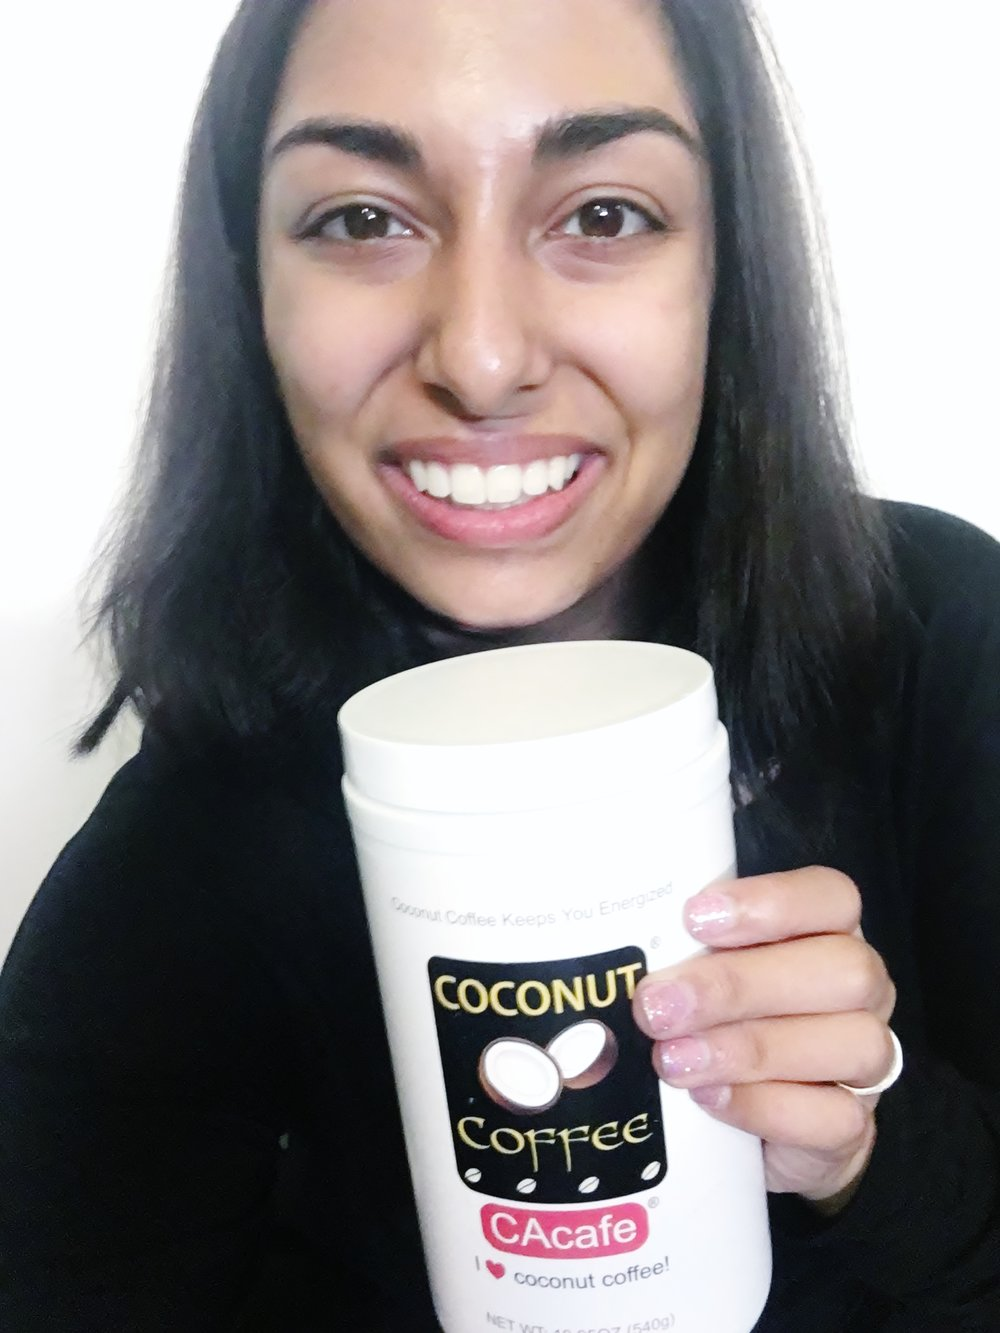 Elora Scamardo shares her experience with CAcafe's Coconut Coffee and how it gets her through every day at school